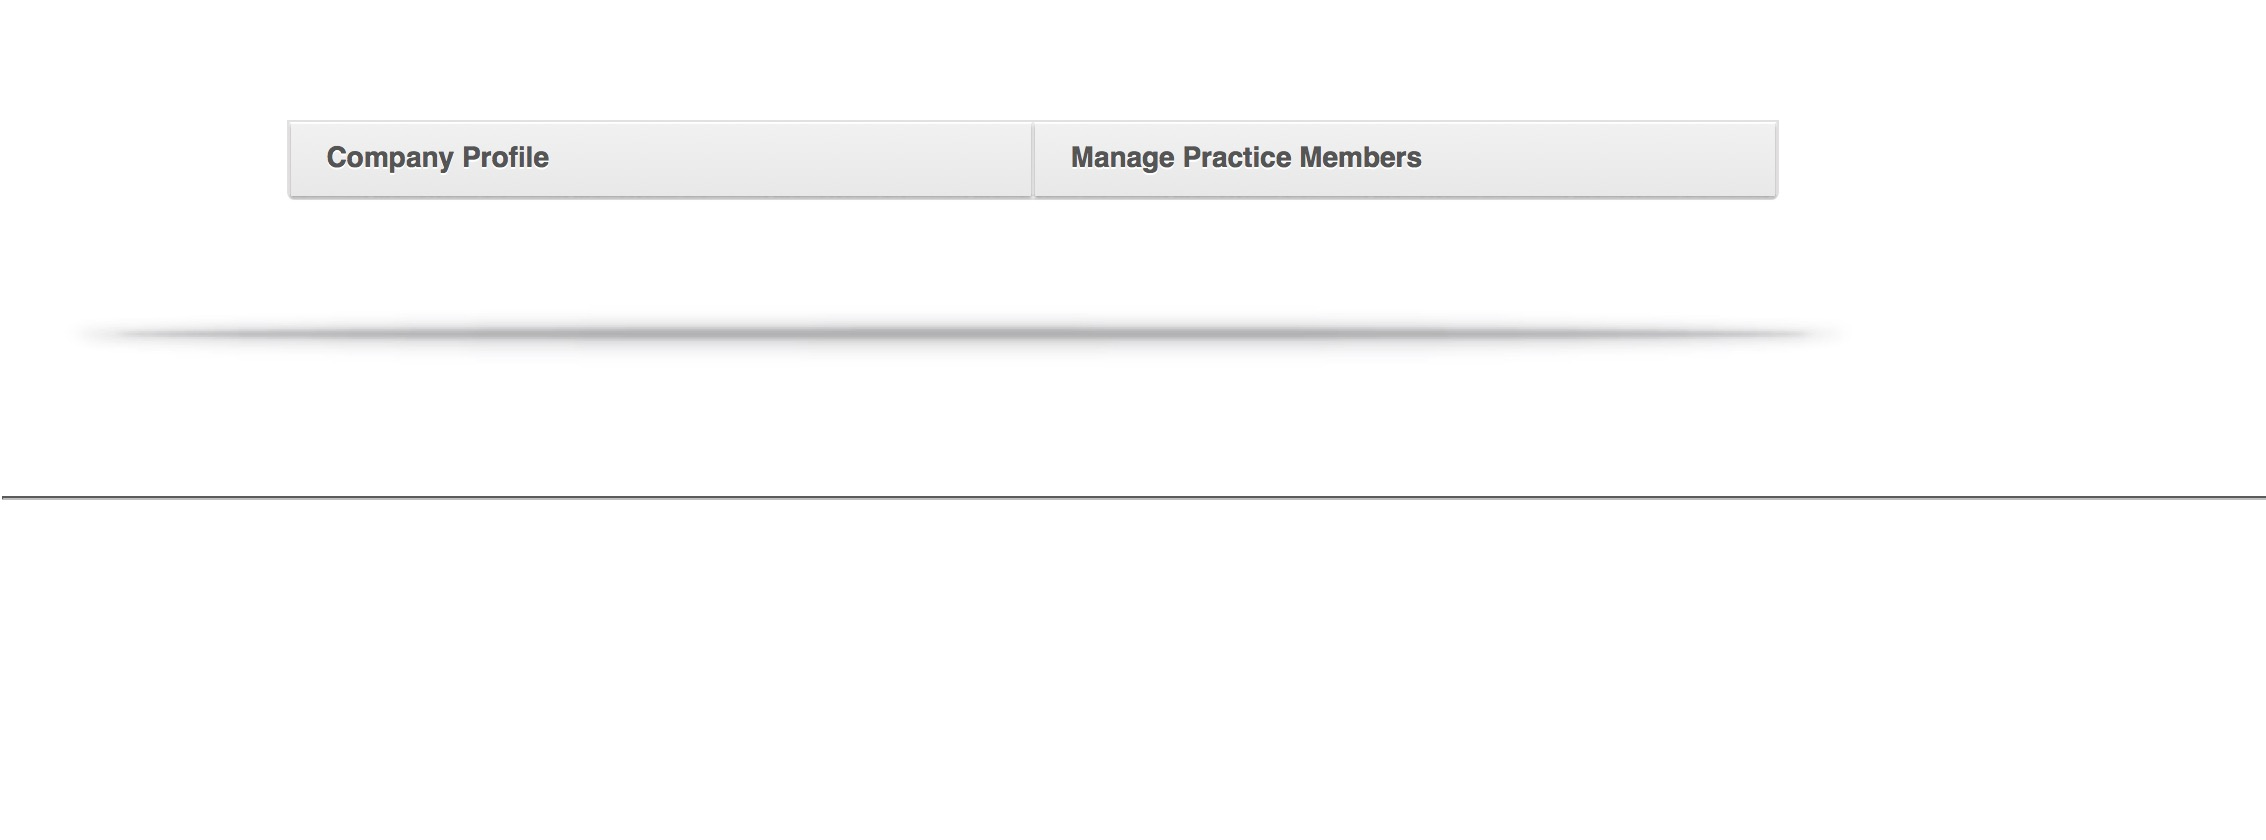 VetFolio Manage Practice Members Screenshot